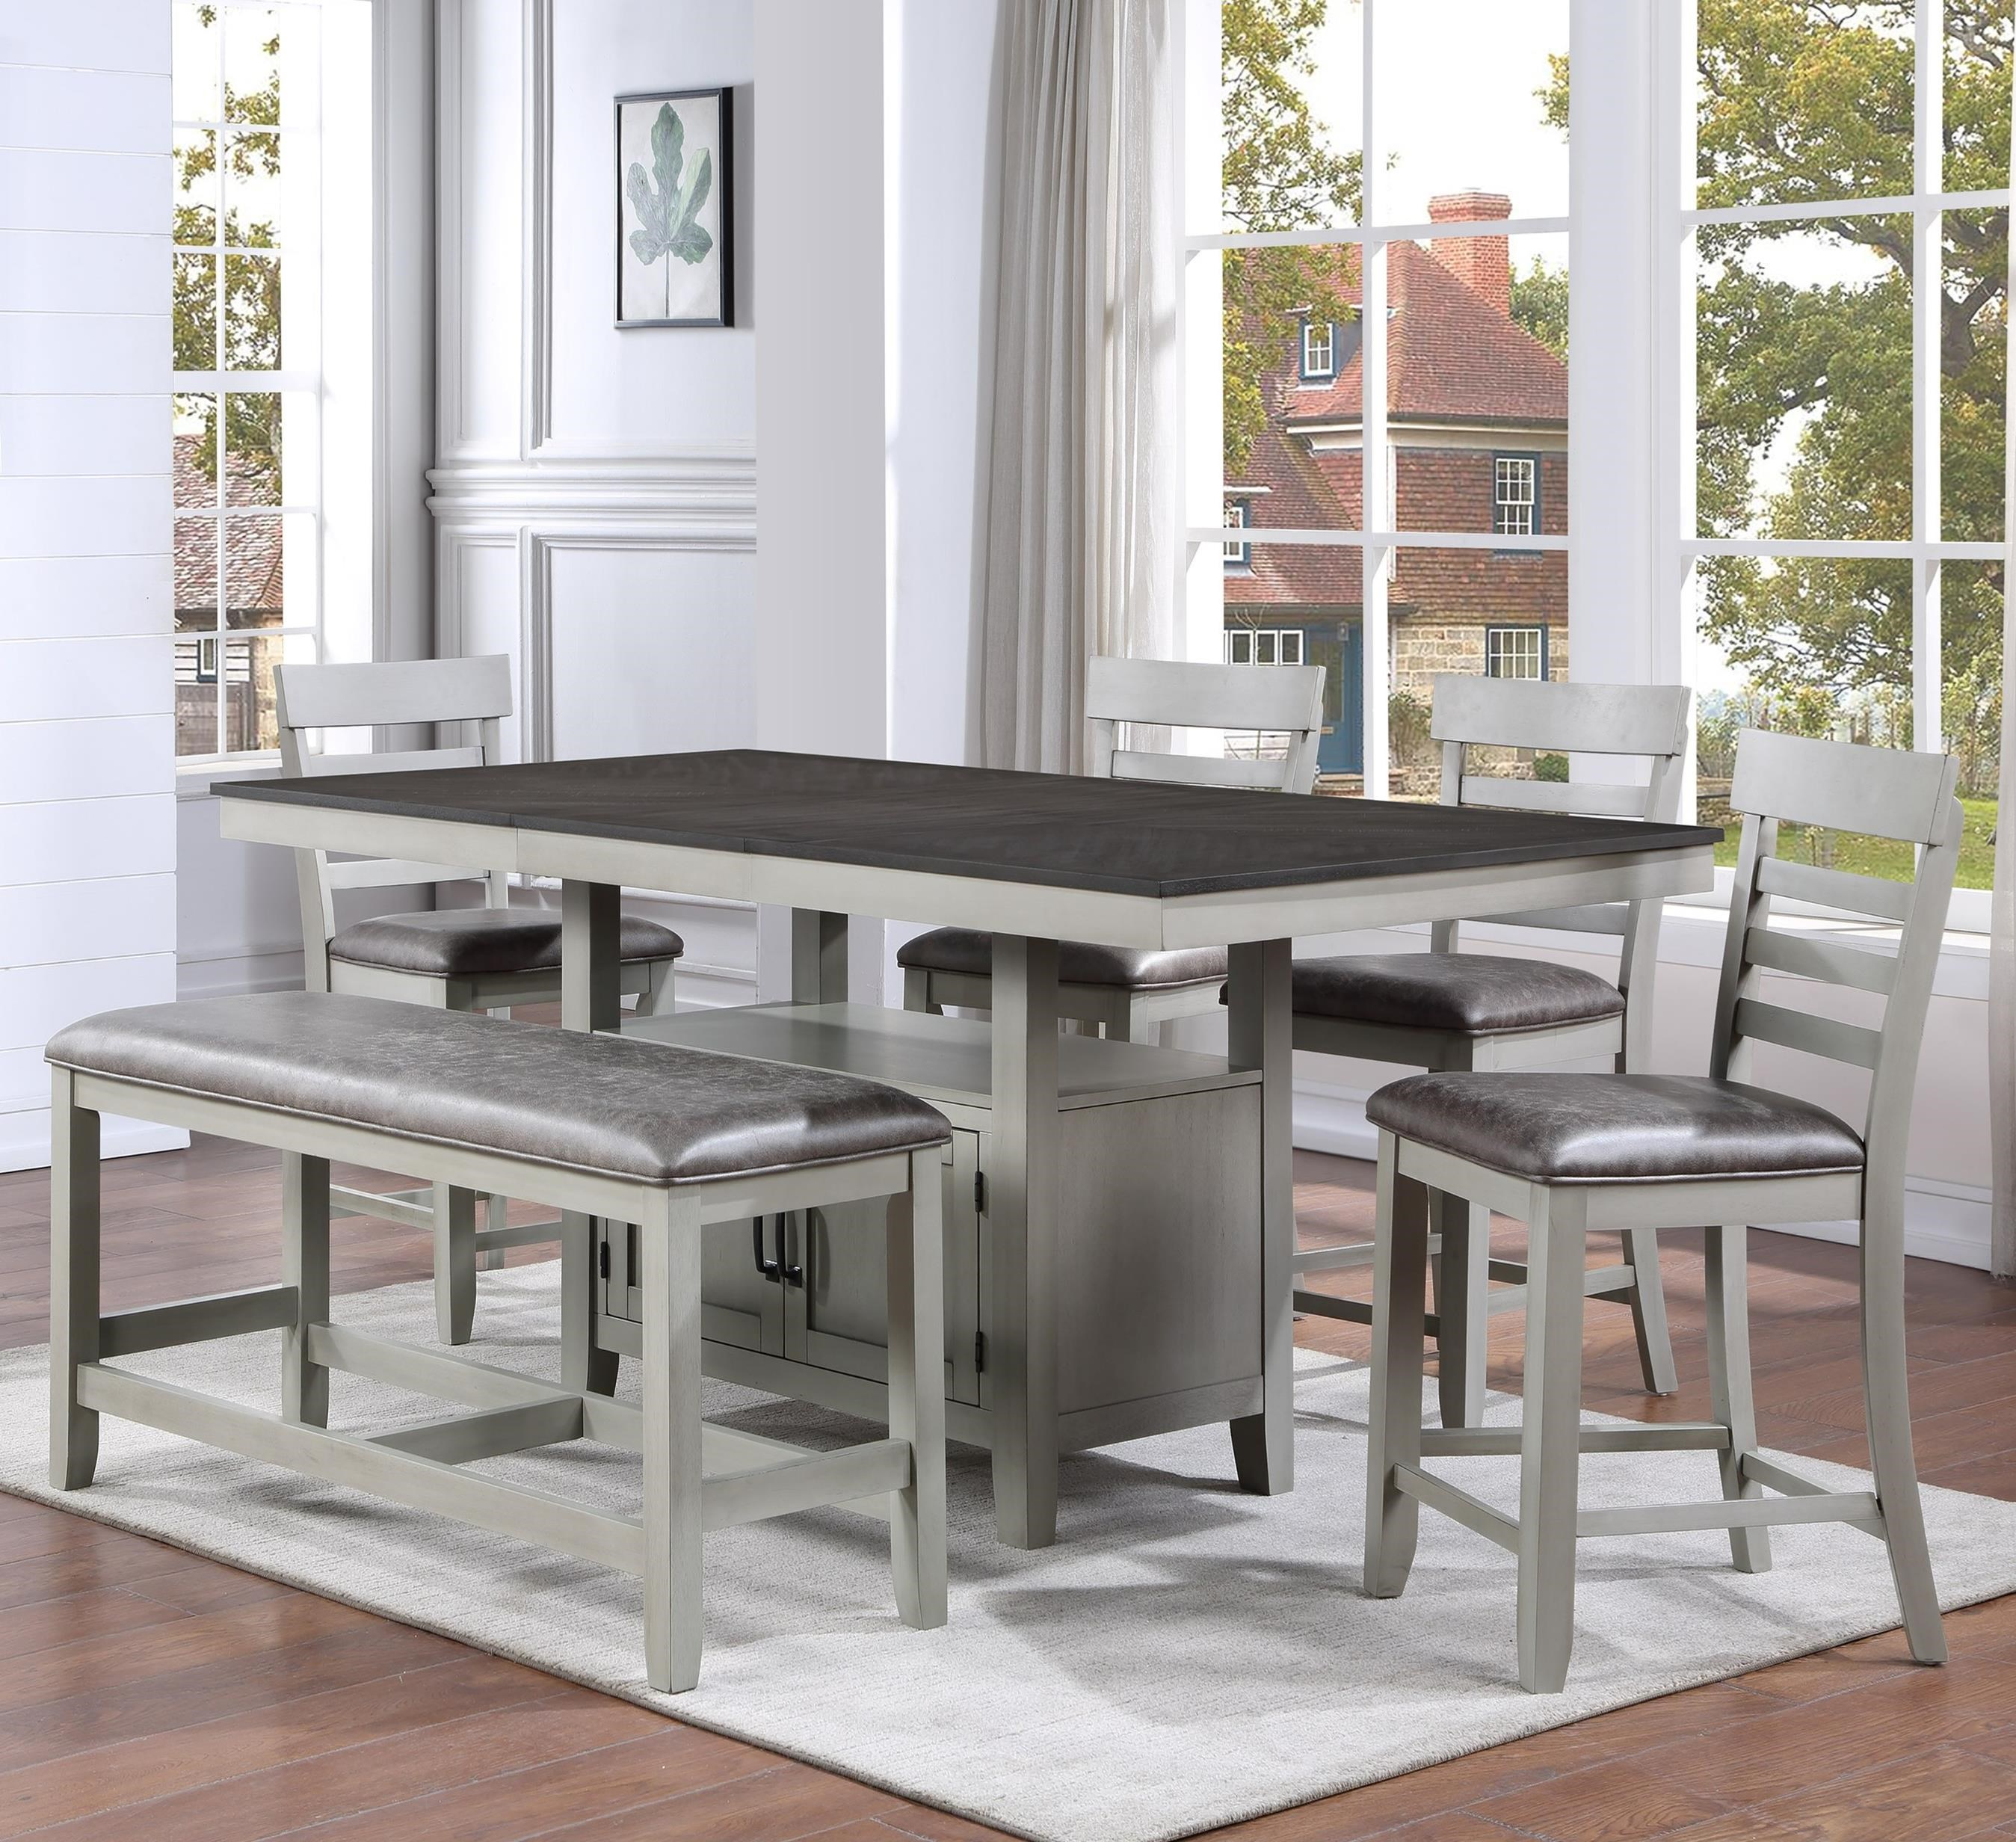 Hyland 6-Piece Counter Table Set with Bench by Steve Silver at Walker's Furniture